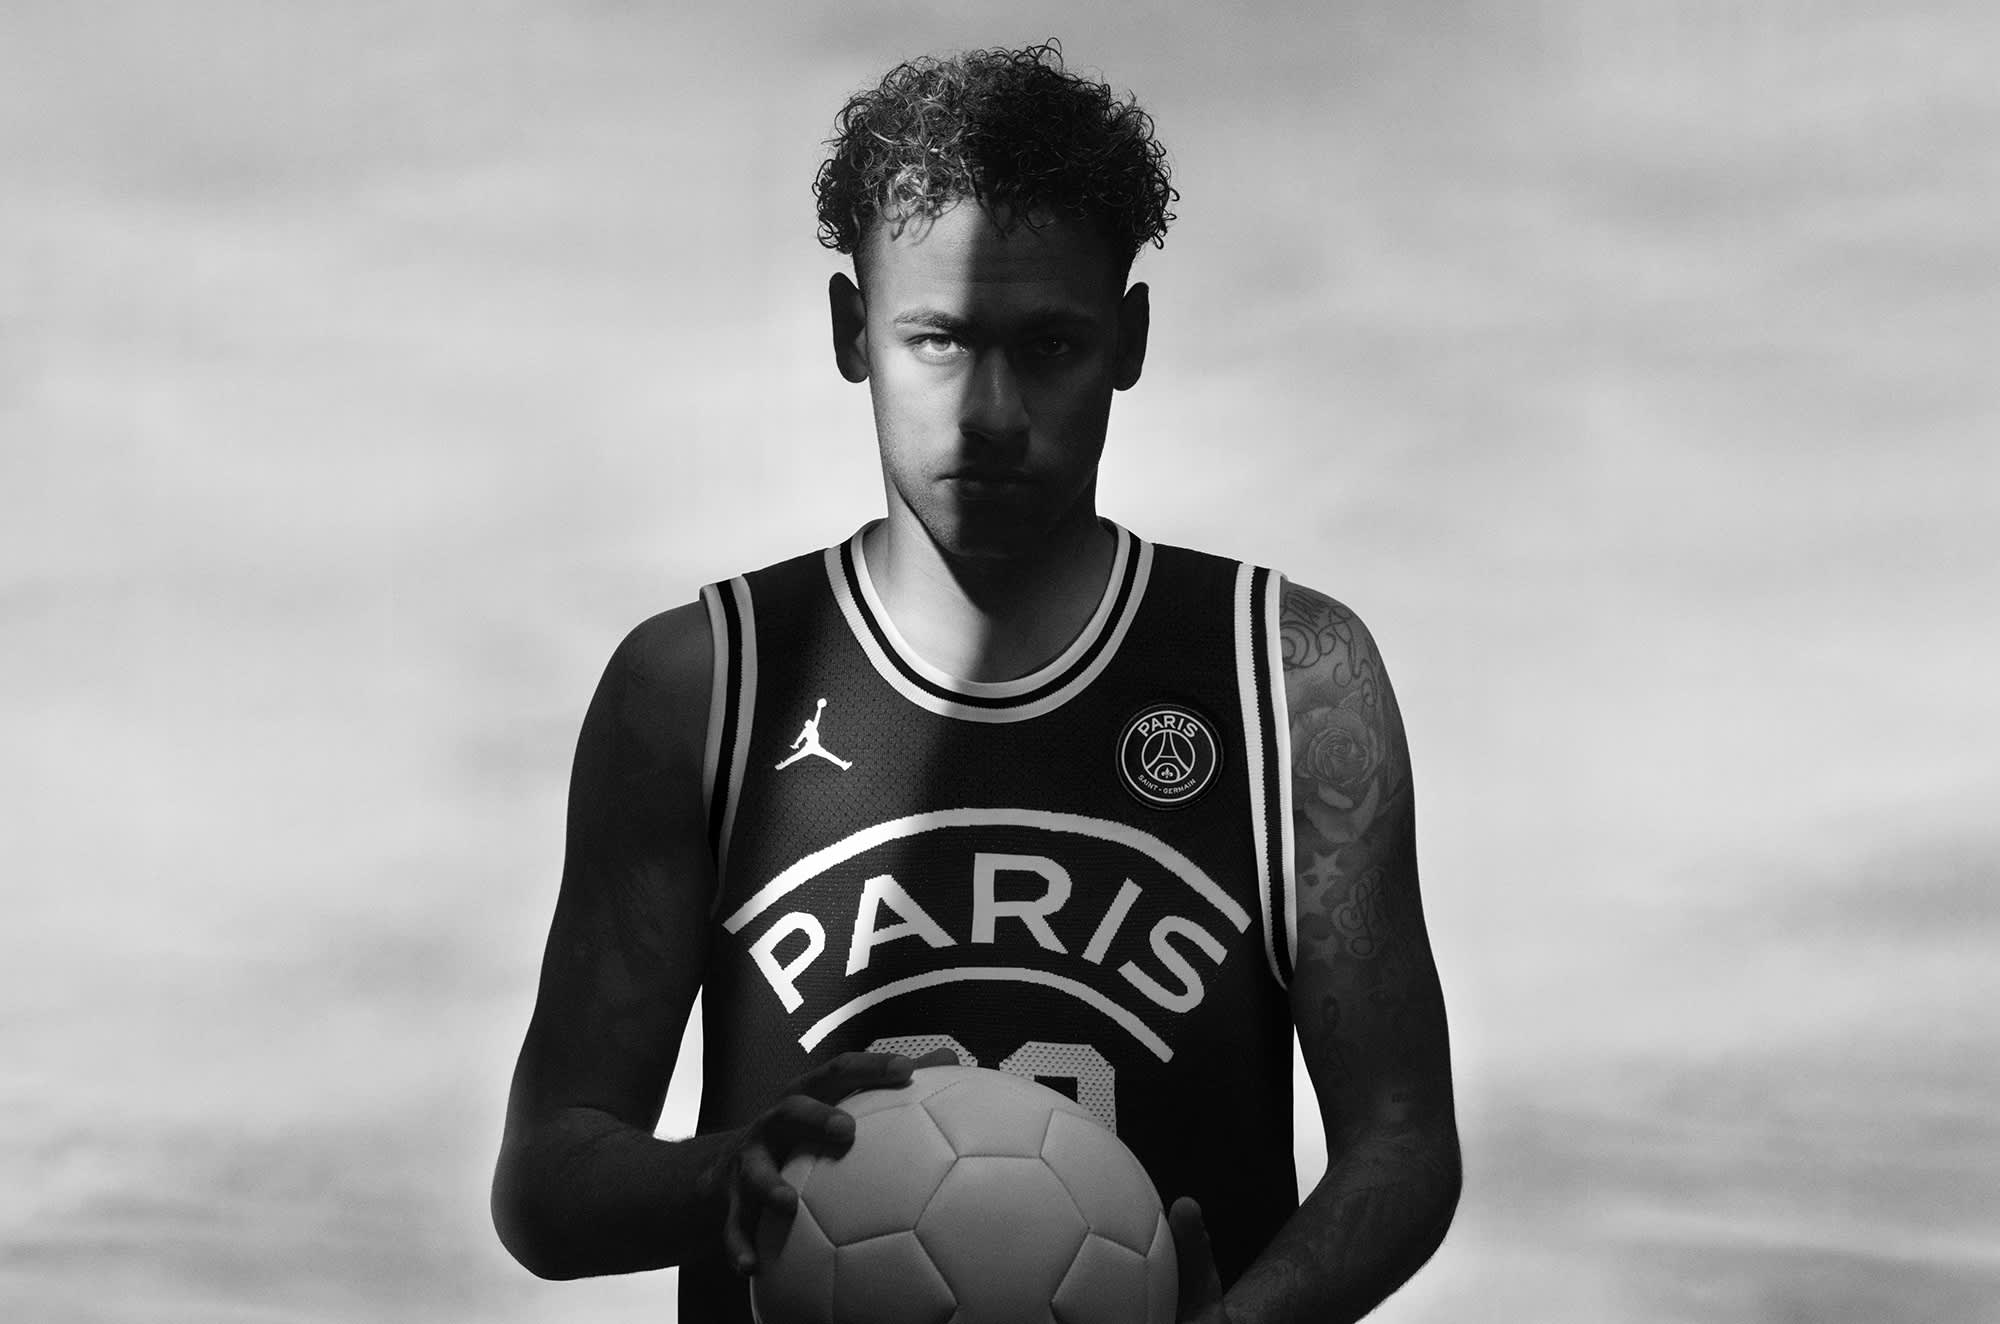 info for 7b10c 74bcd Nike takes Air Jordans beyond basketball in new partnership with Paris Saint -Germain soccer club